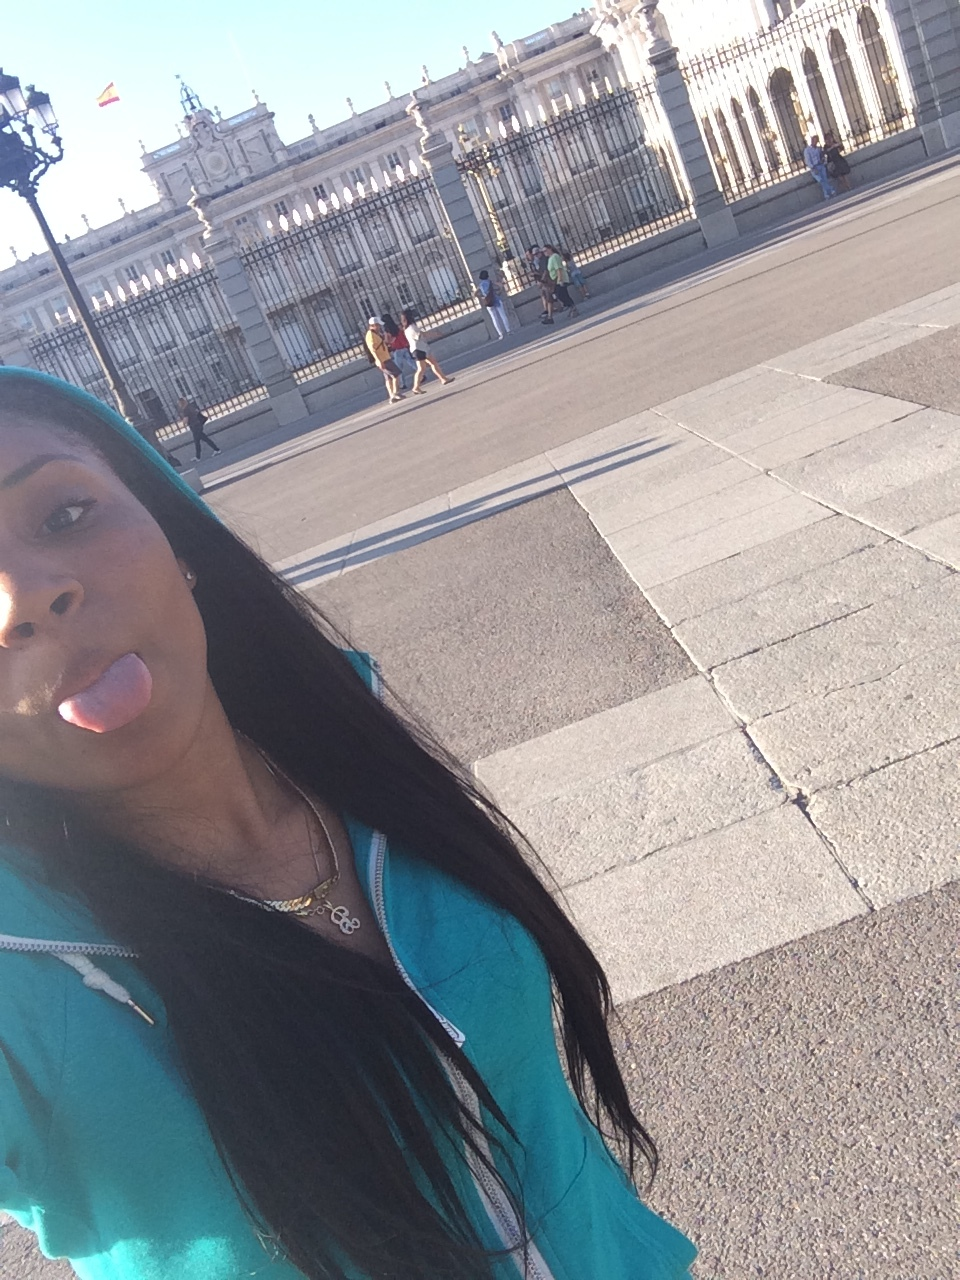 In front of the Royal Palace in Madrid.